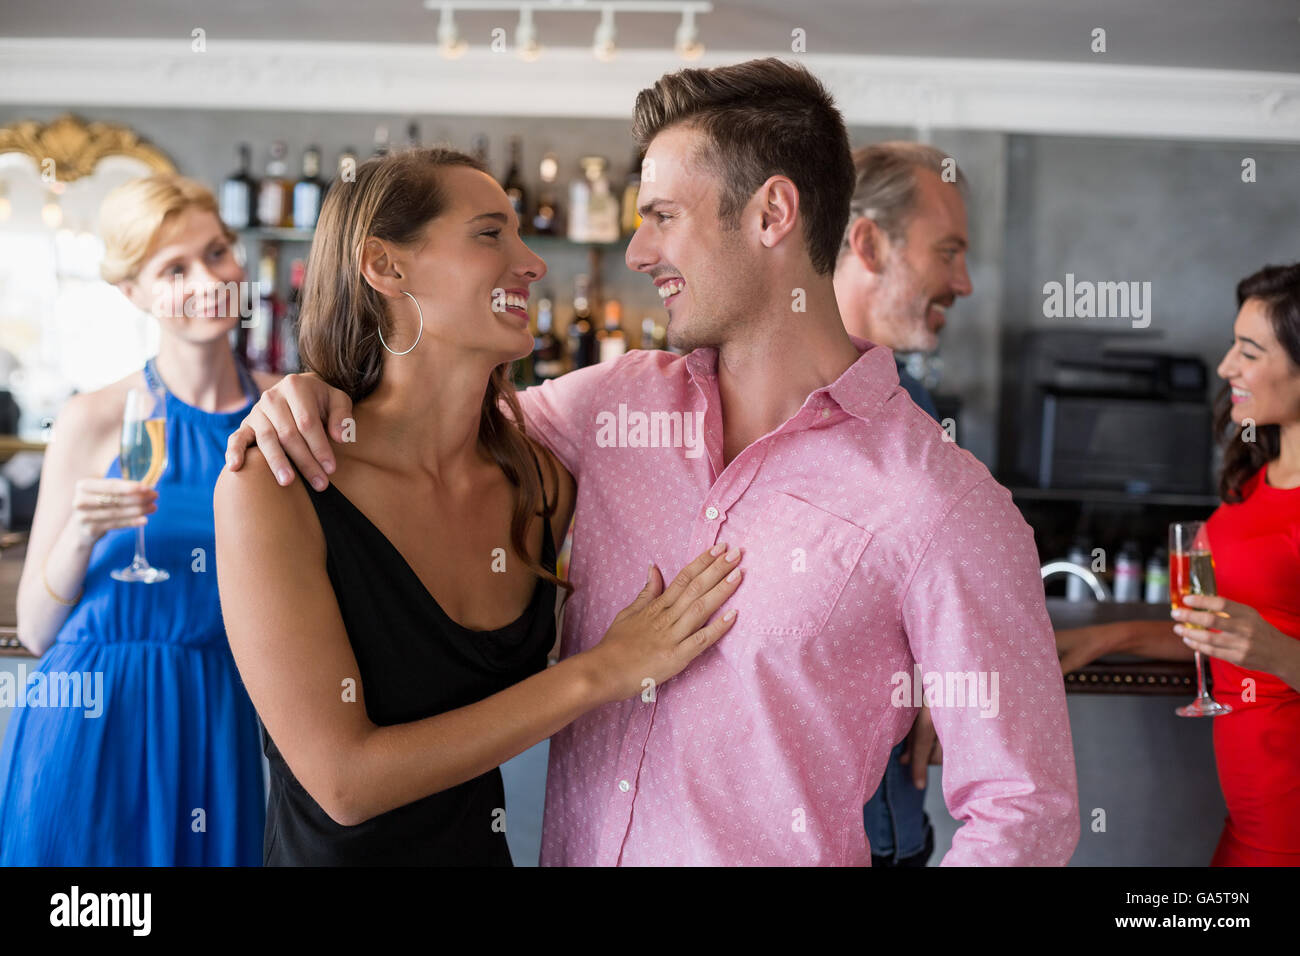 Couple embracing each other in restaurant - Stock Image